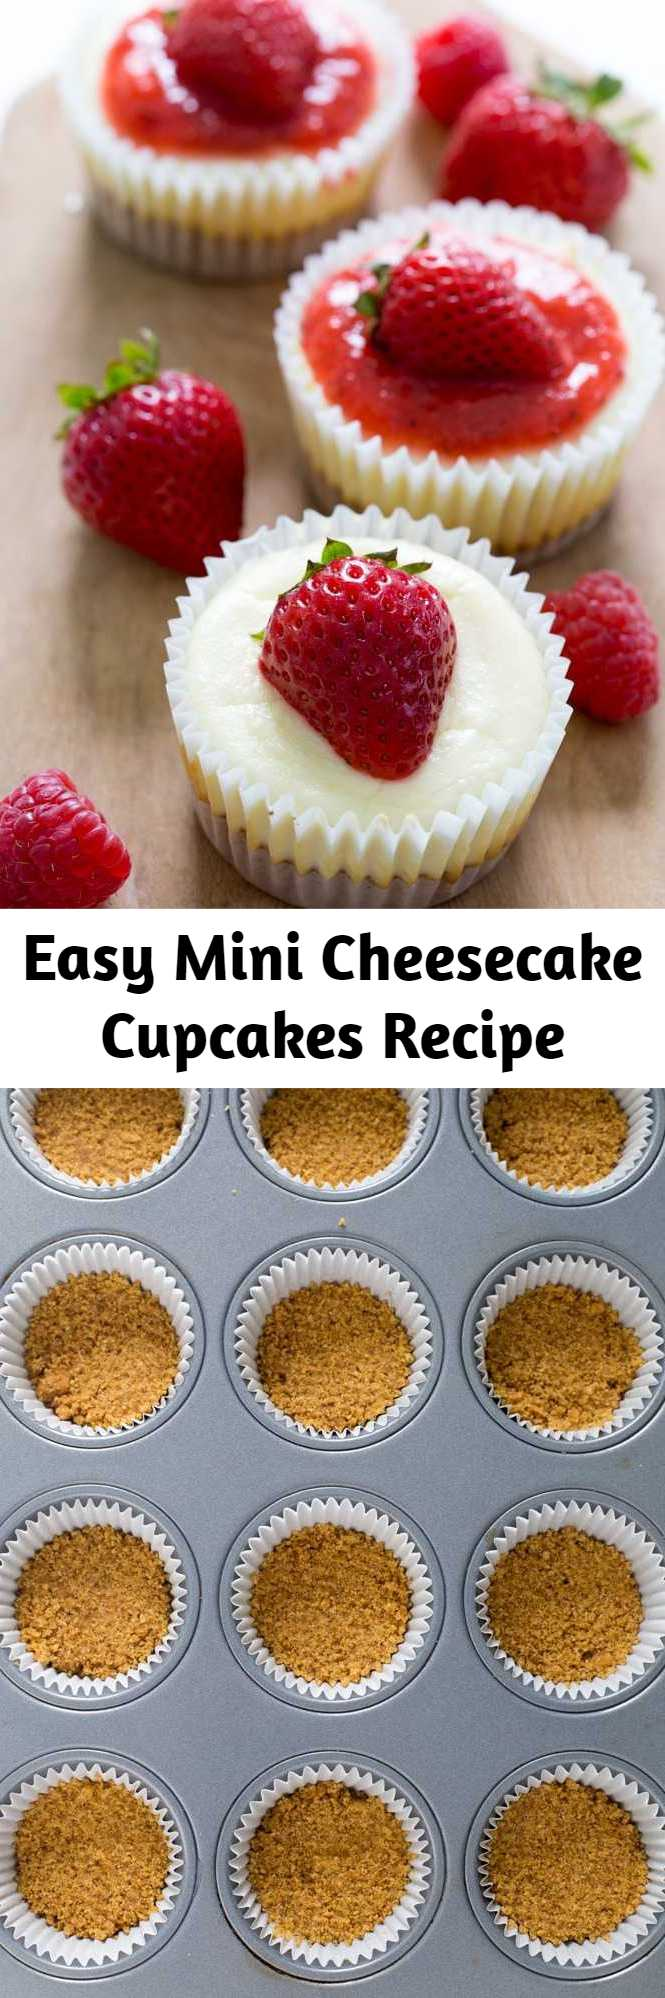 Easy Mini Cheesecake Cupcakes Recipe - Super Easy Mini Cheesecake Cupcakes. Layered with a graham cracker crust and creamy tangy cheesecake. Top with salted caramel sauce, chocolate or strawberry sauce!